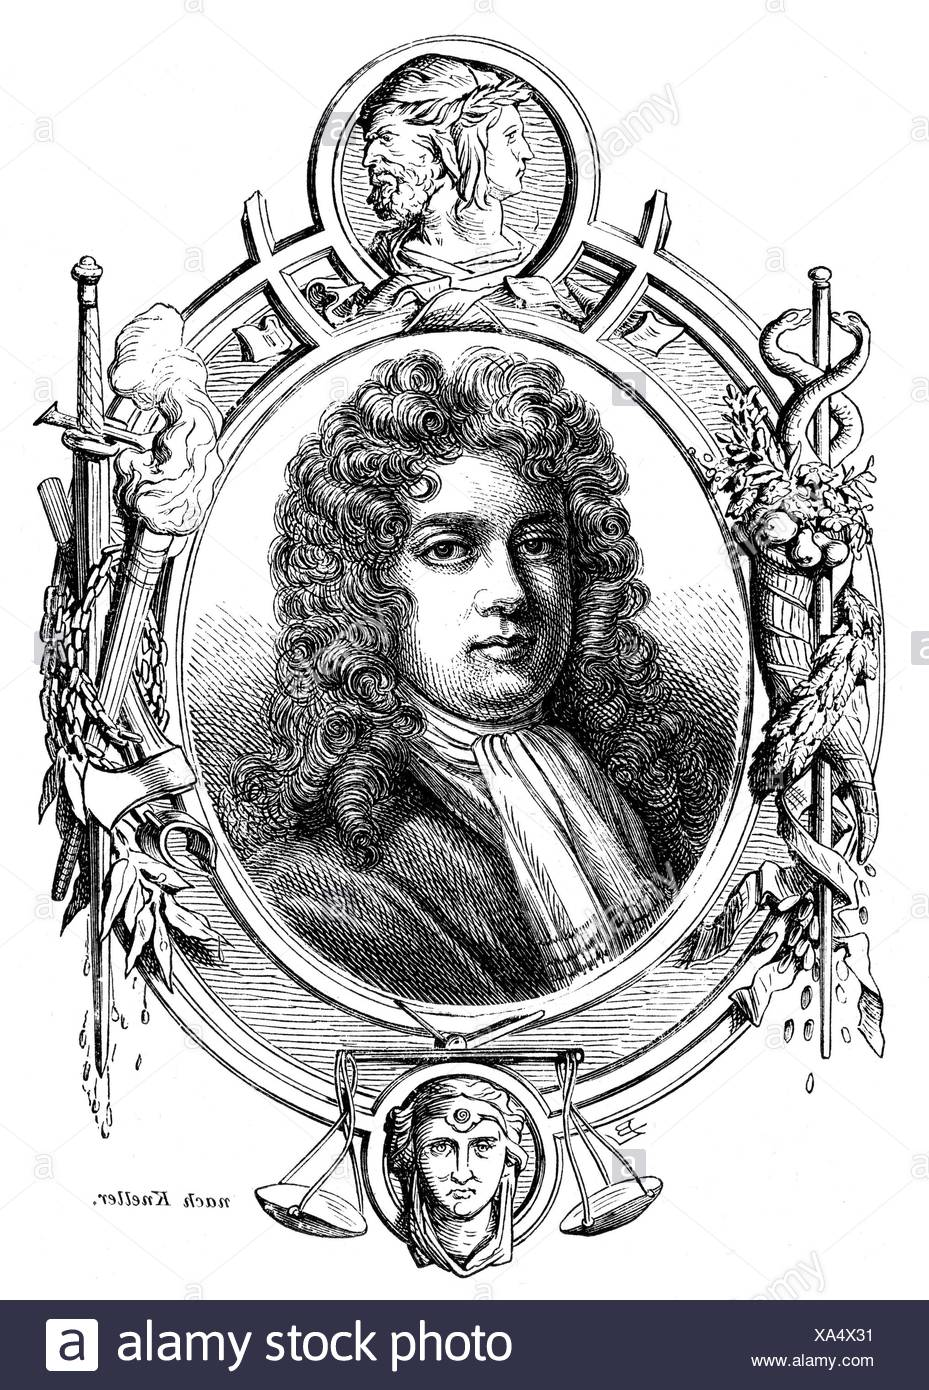 Montagu, Charles, 1st Duke of Manchester, 1656 - 20.1.1722, English politician, portrait, wood engraving, 19th century, Additional-Rights-Clearances-NA - Stock Image